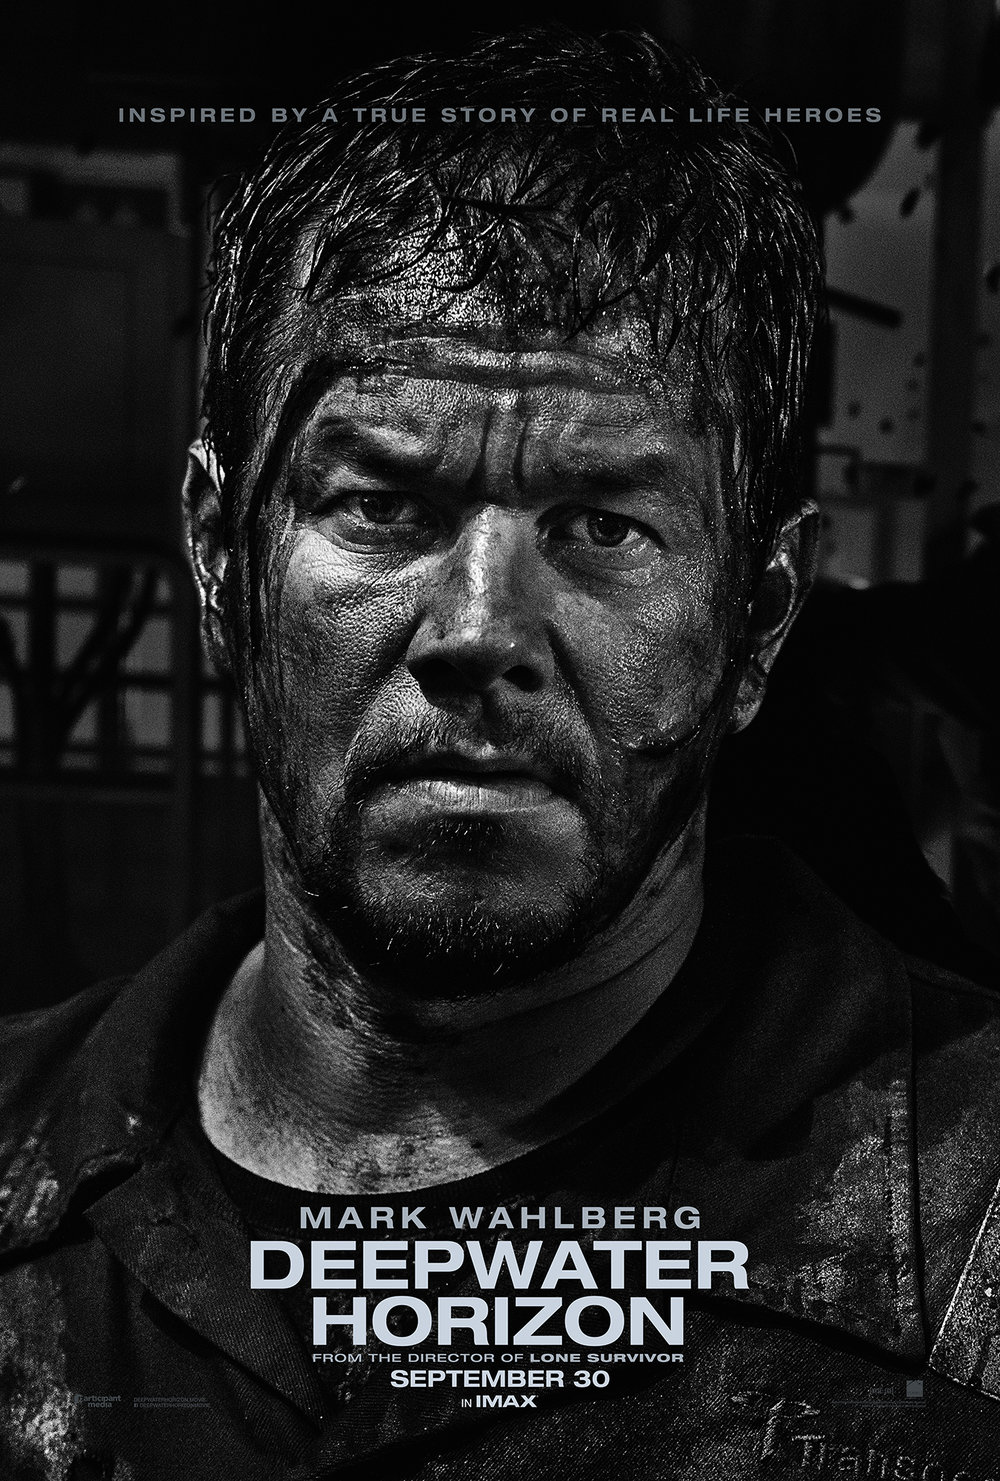 DeepwaterHorizon_1Sht_Mark_Trim_100dpi.jpg